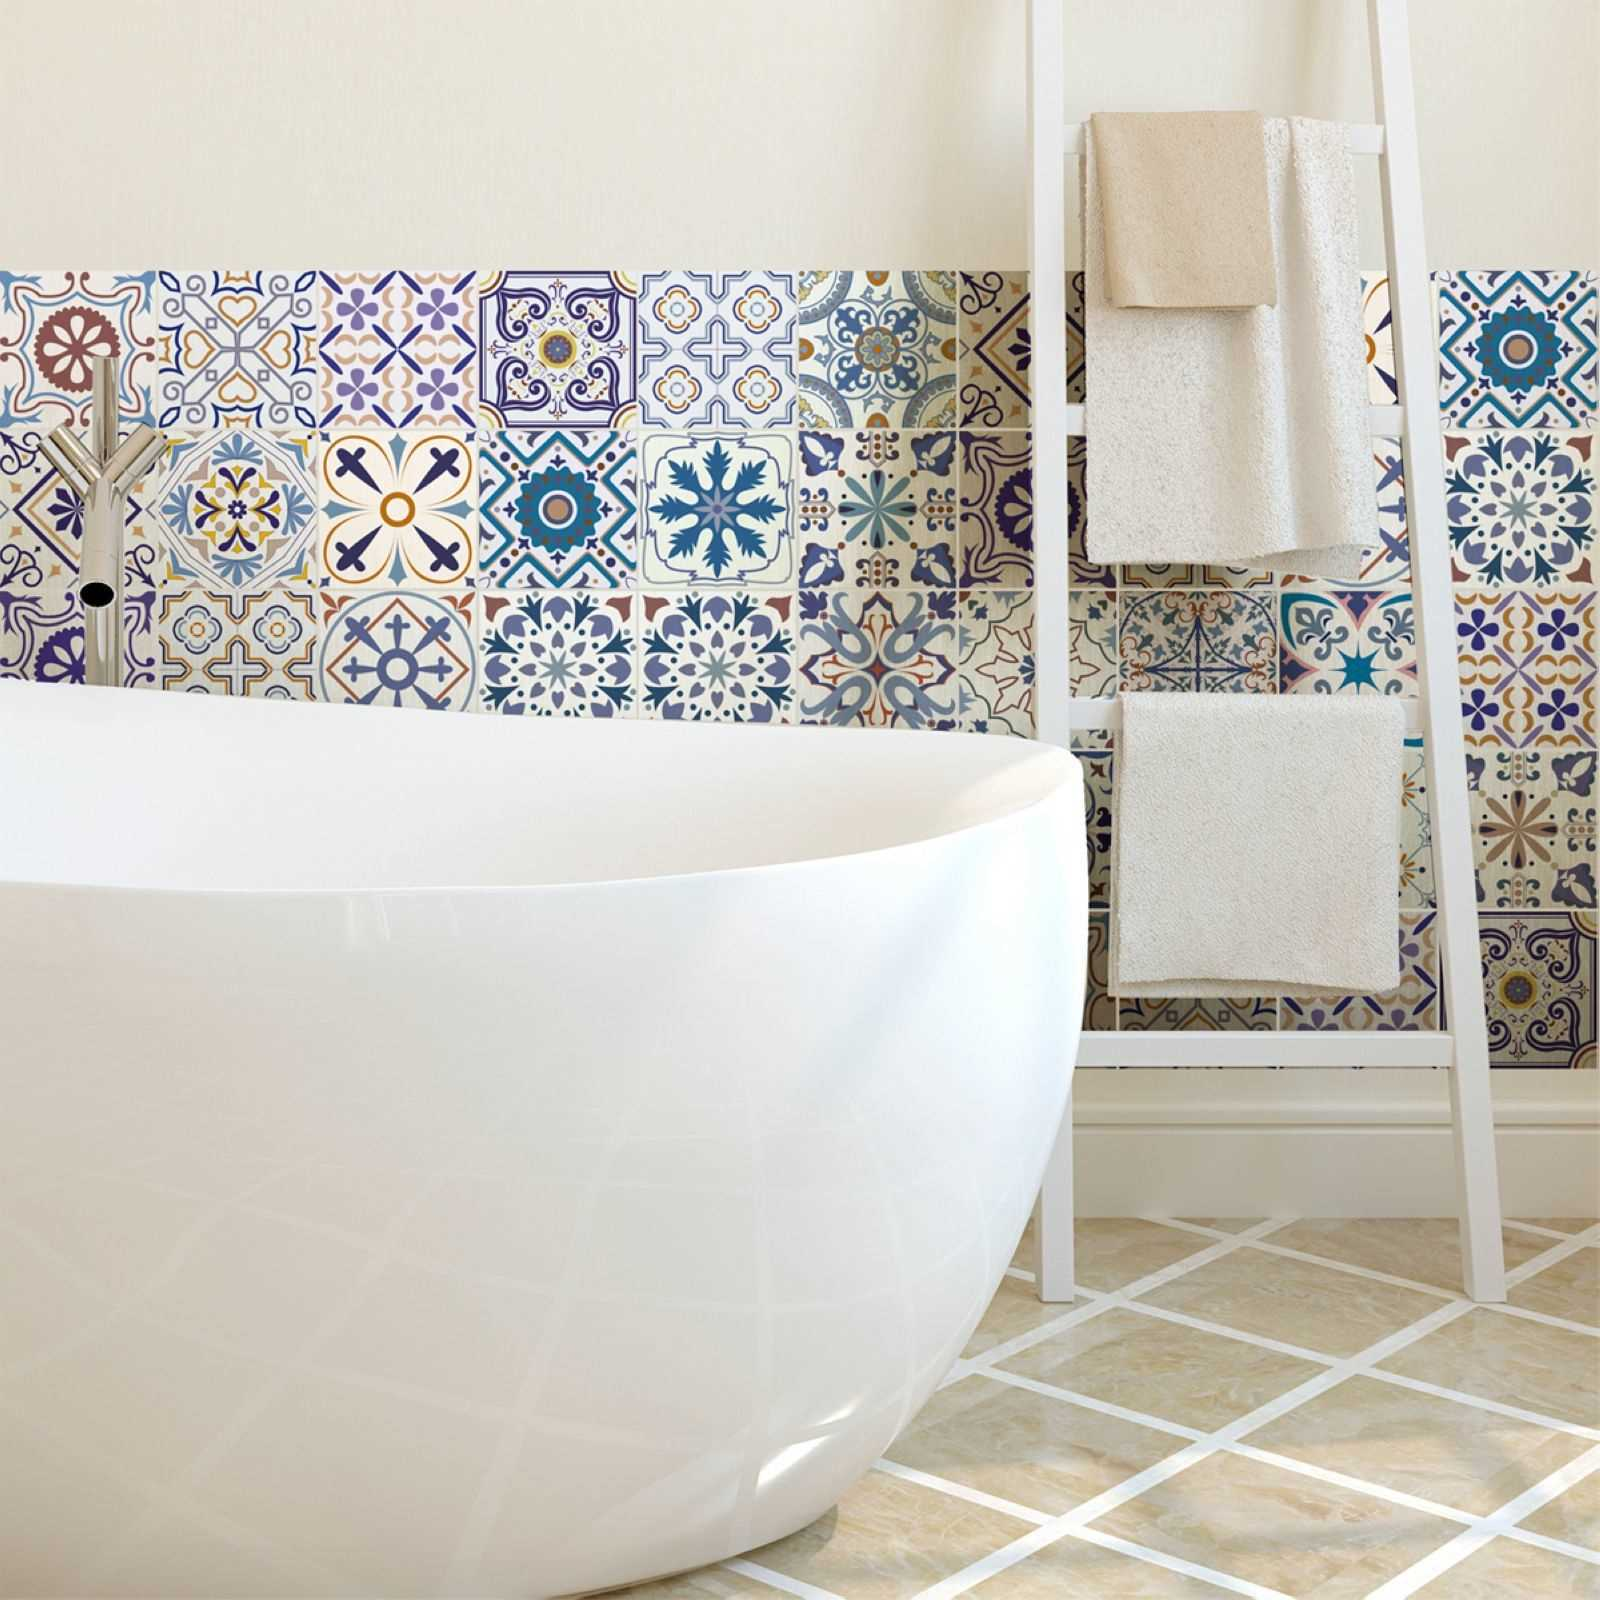 ambiance live riviera 30 stickers carrelages azulejos. Black Bedroom Furniture Sets. Home Design Ideas